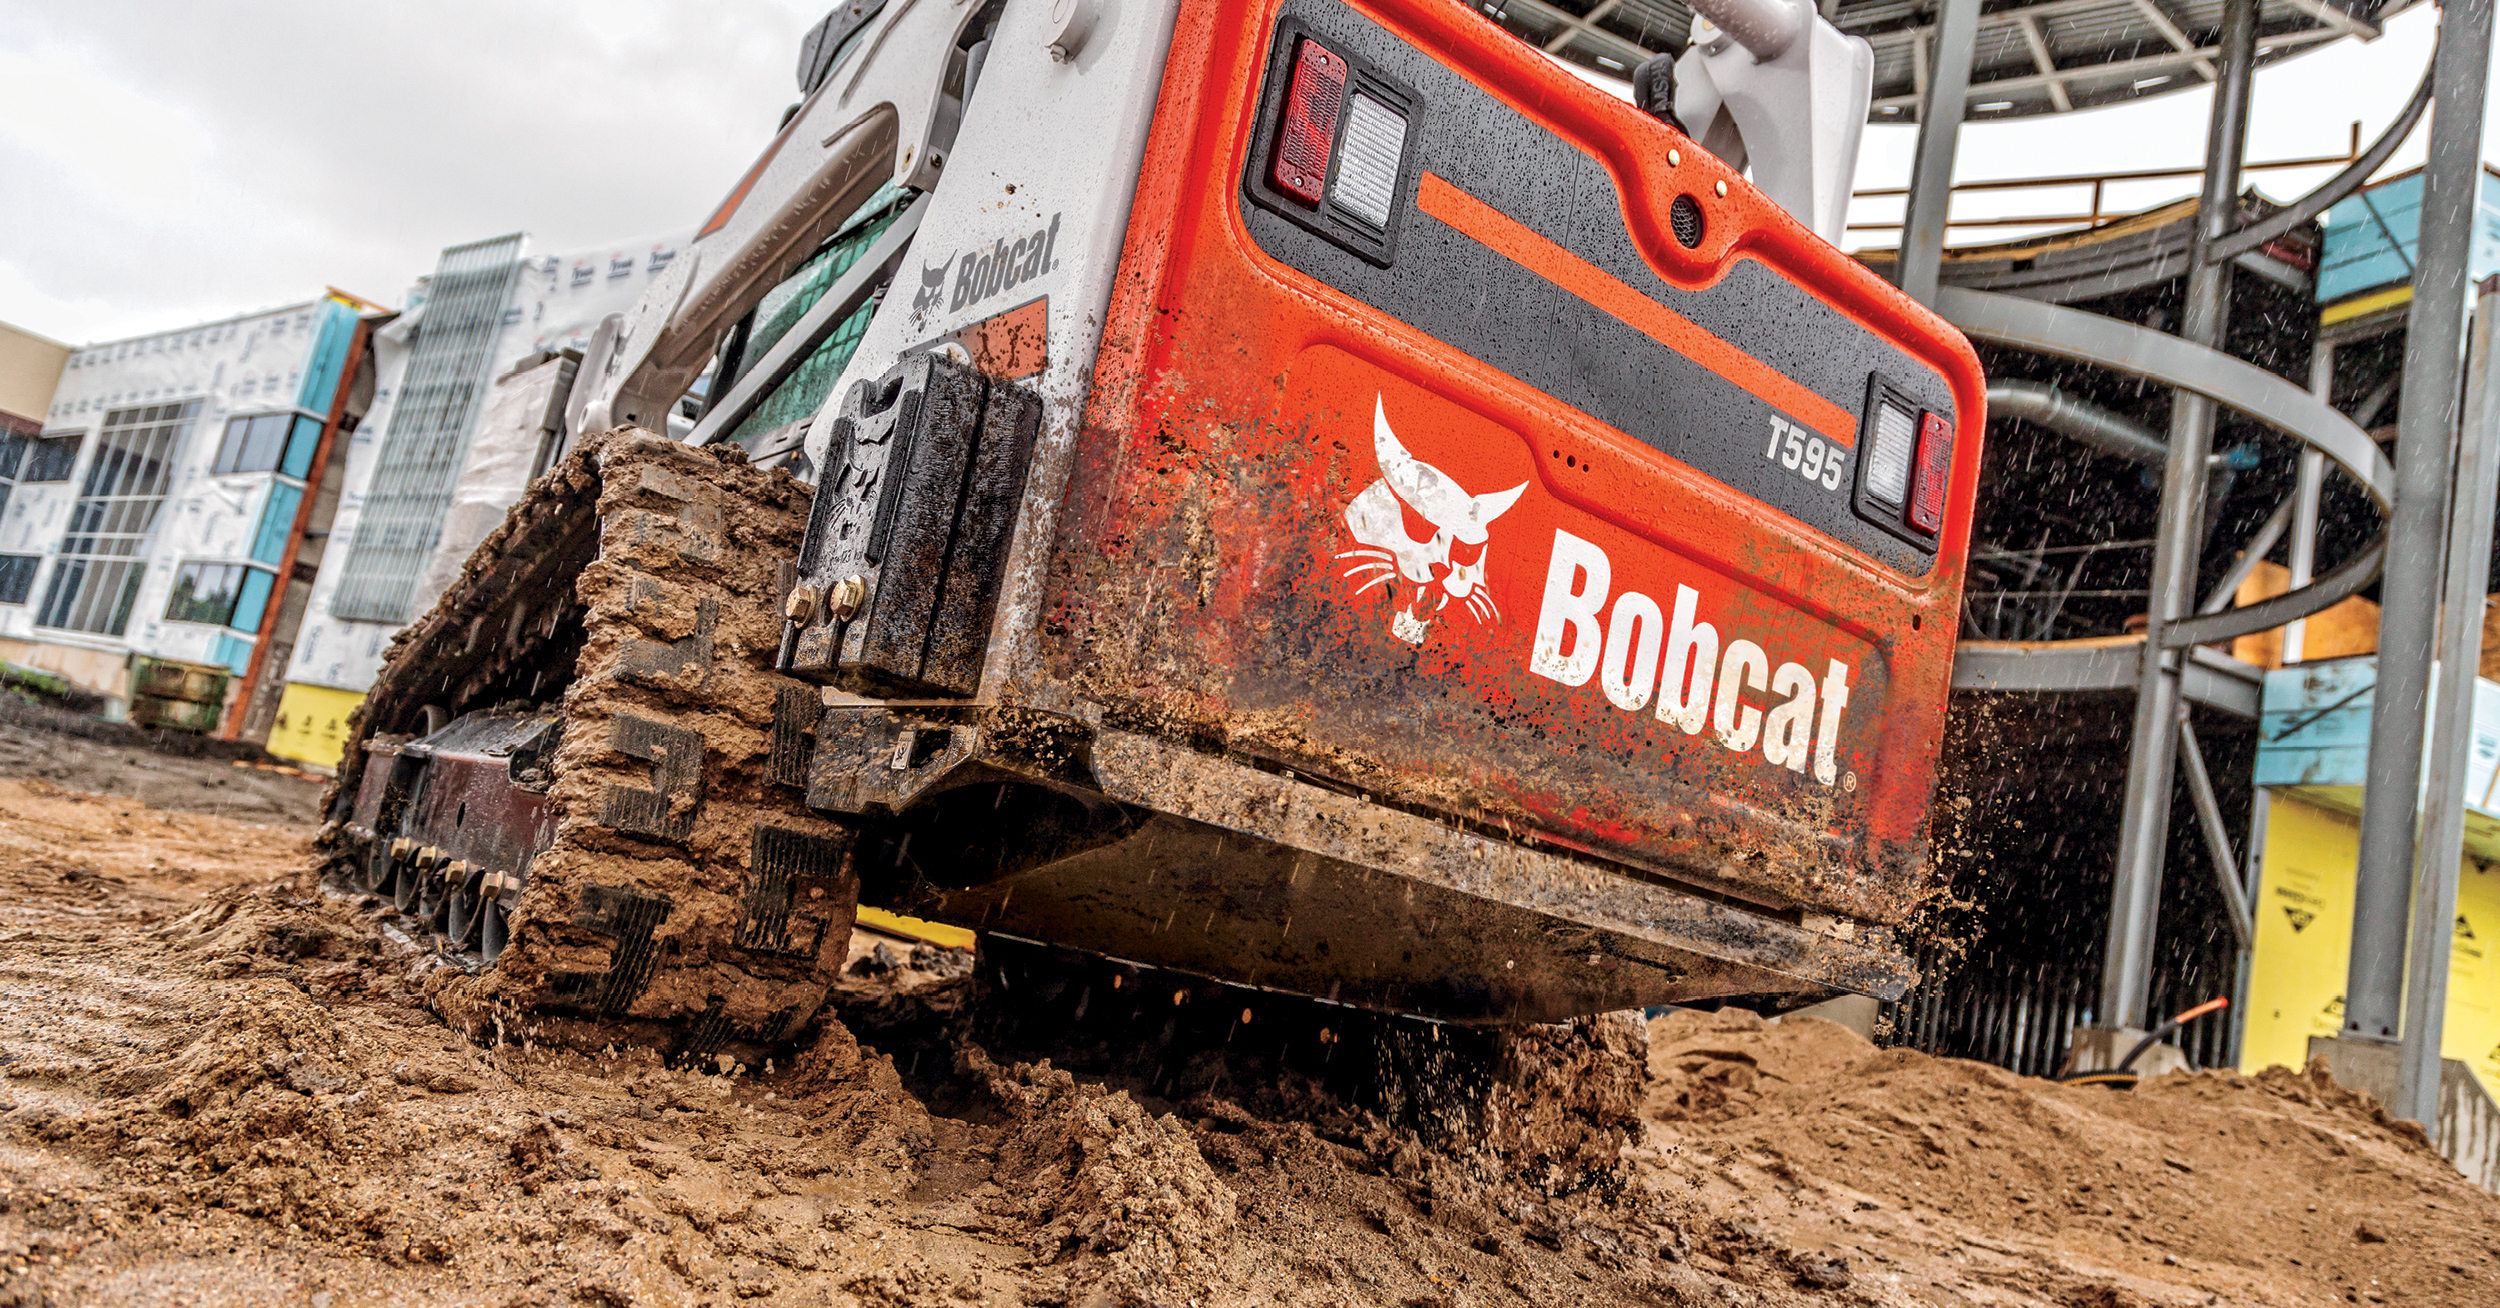 Bobcat T595 compact track loader powers through mud and stays productive on a busy construction site.